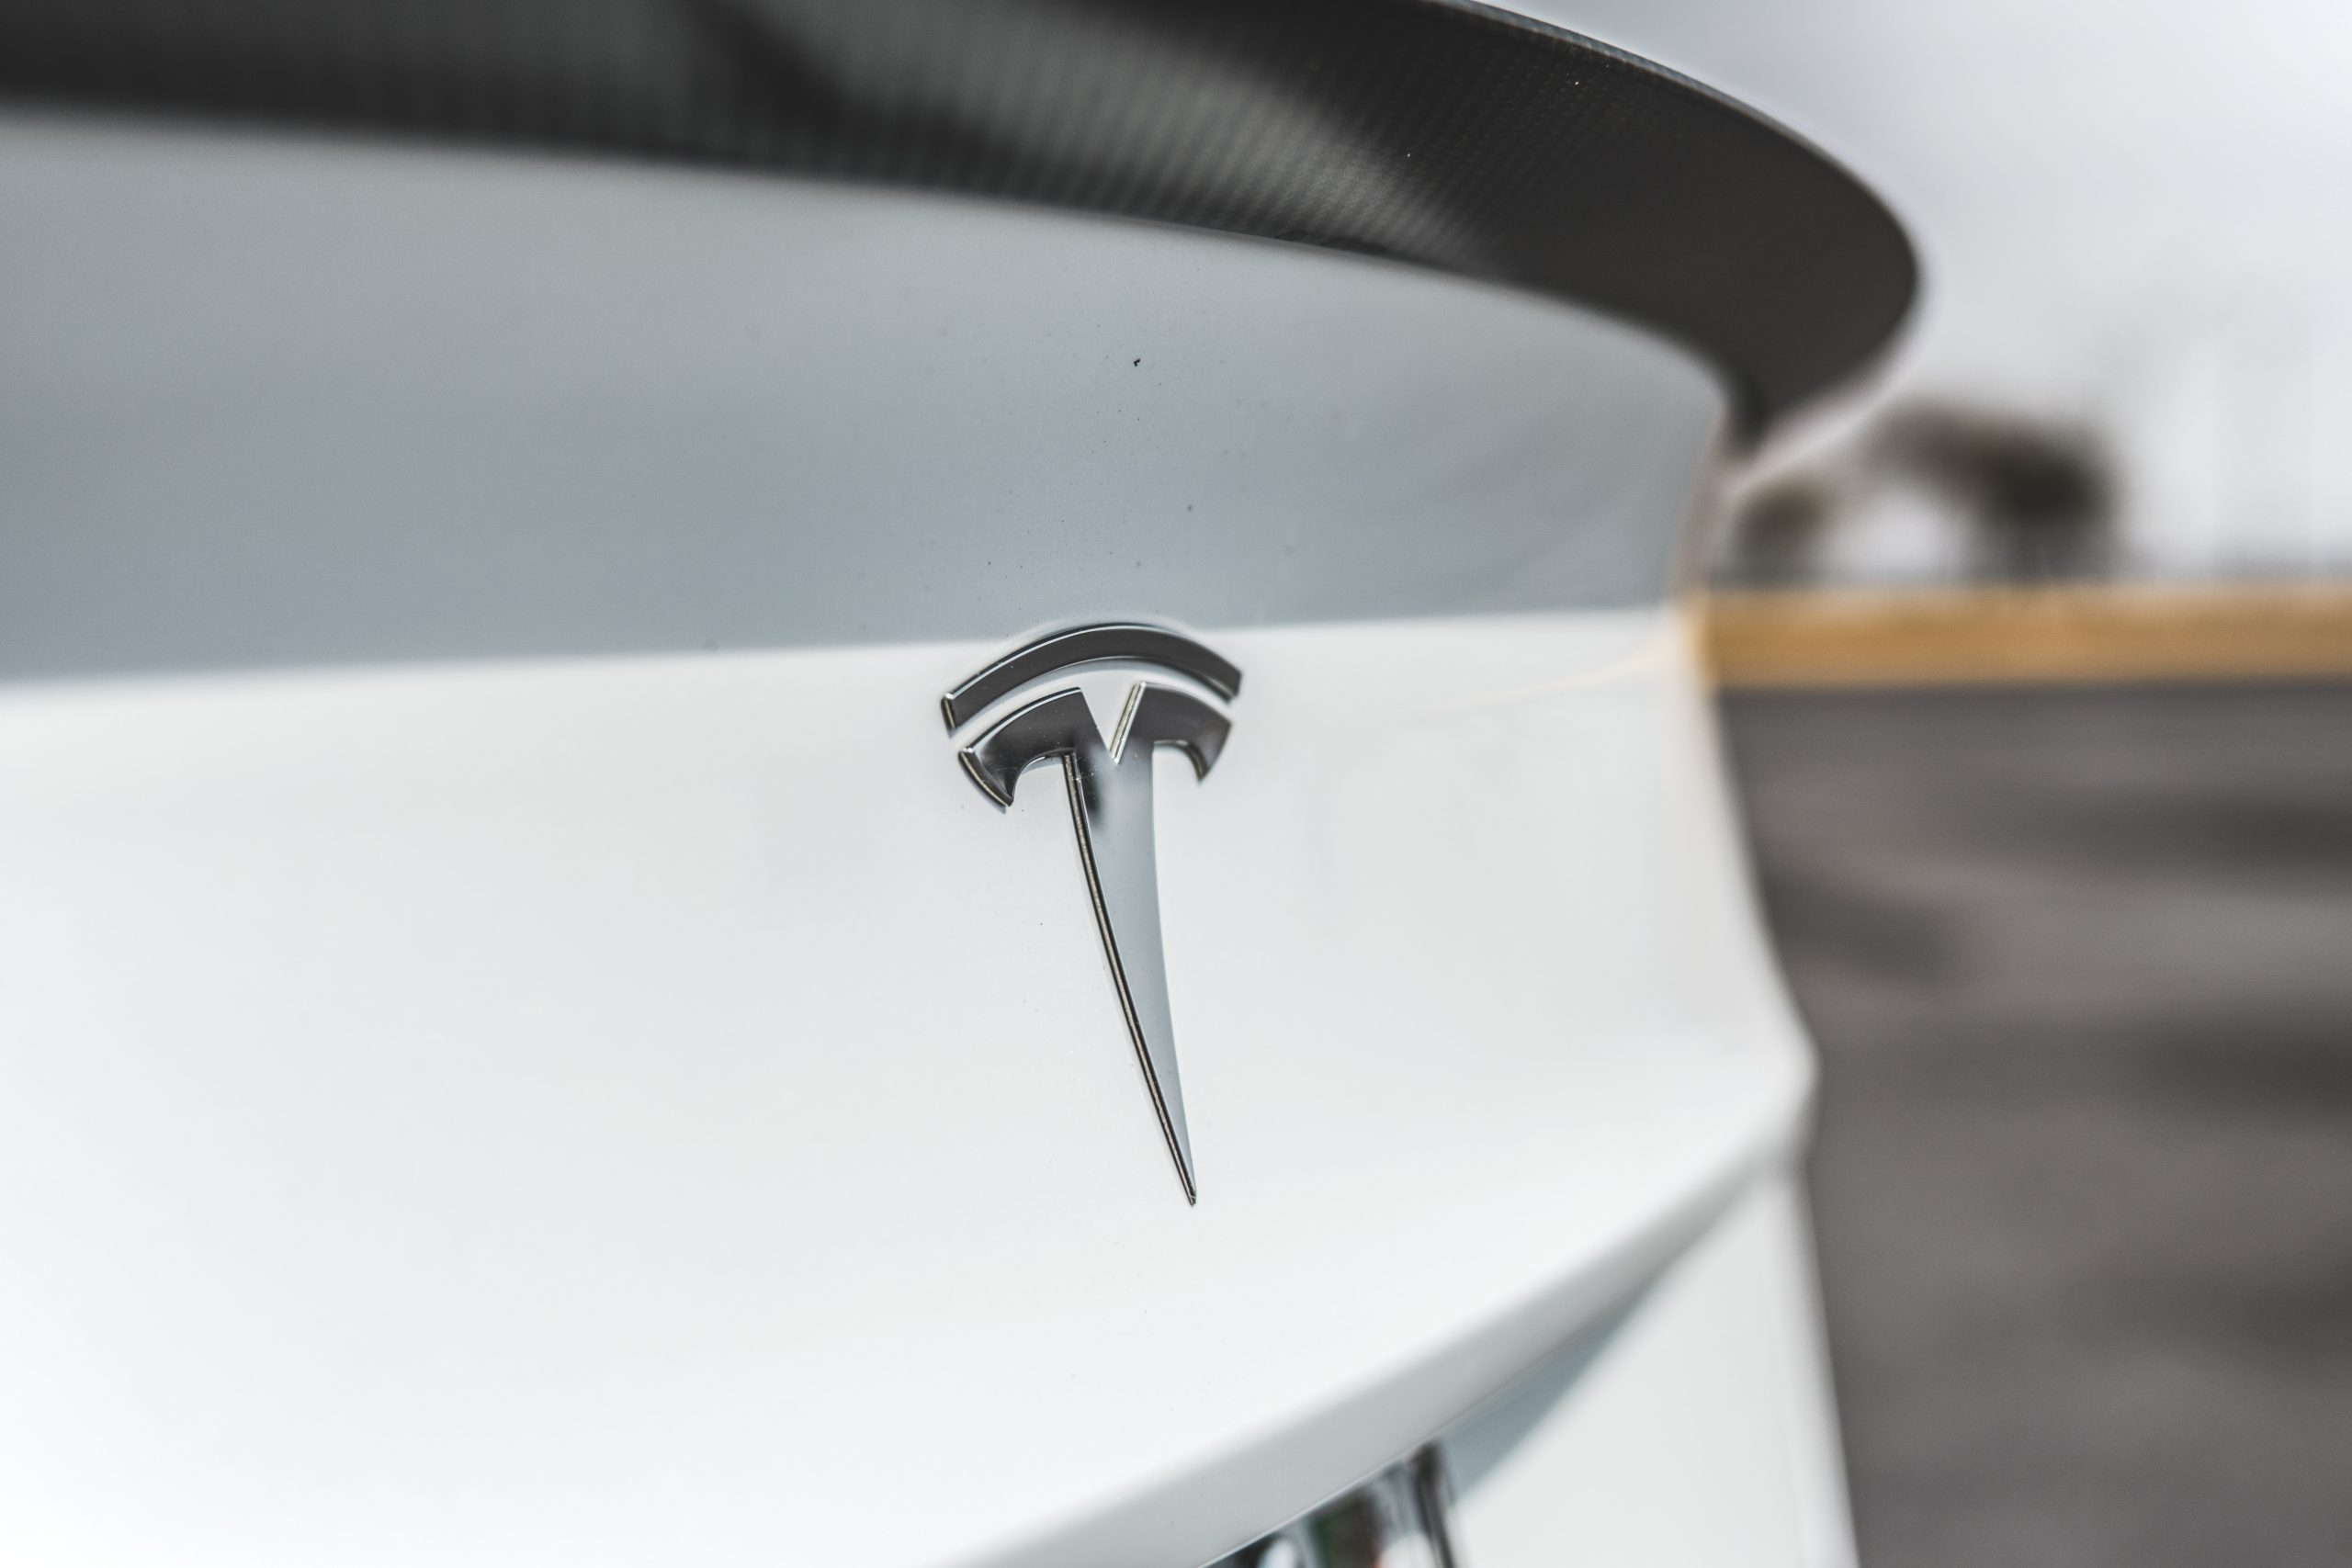 Tesla accounts for 3 out of every 4 EVs sold in South Korea this year so far